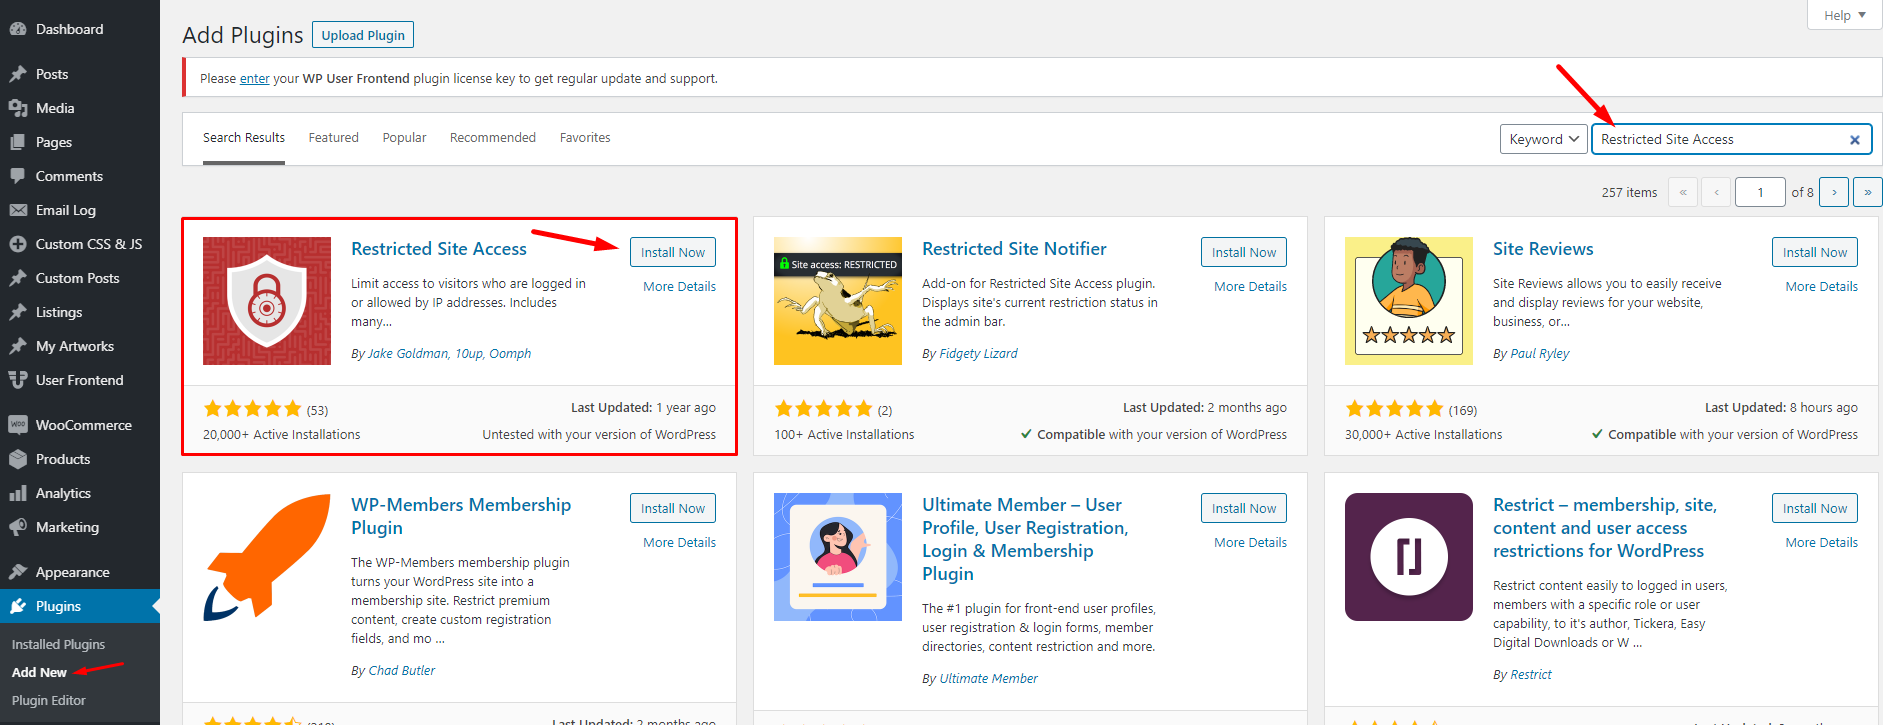 How to restrict the entire WordPress site by excluding a few essential pages 2